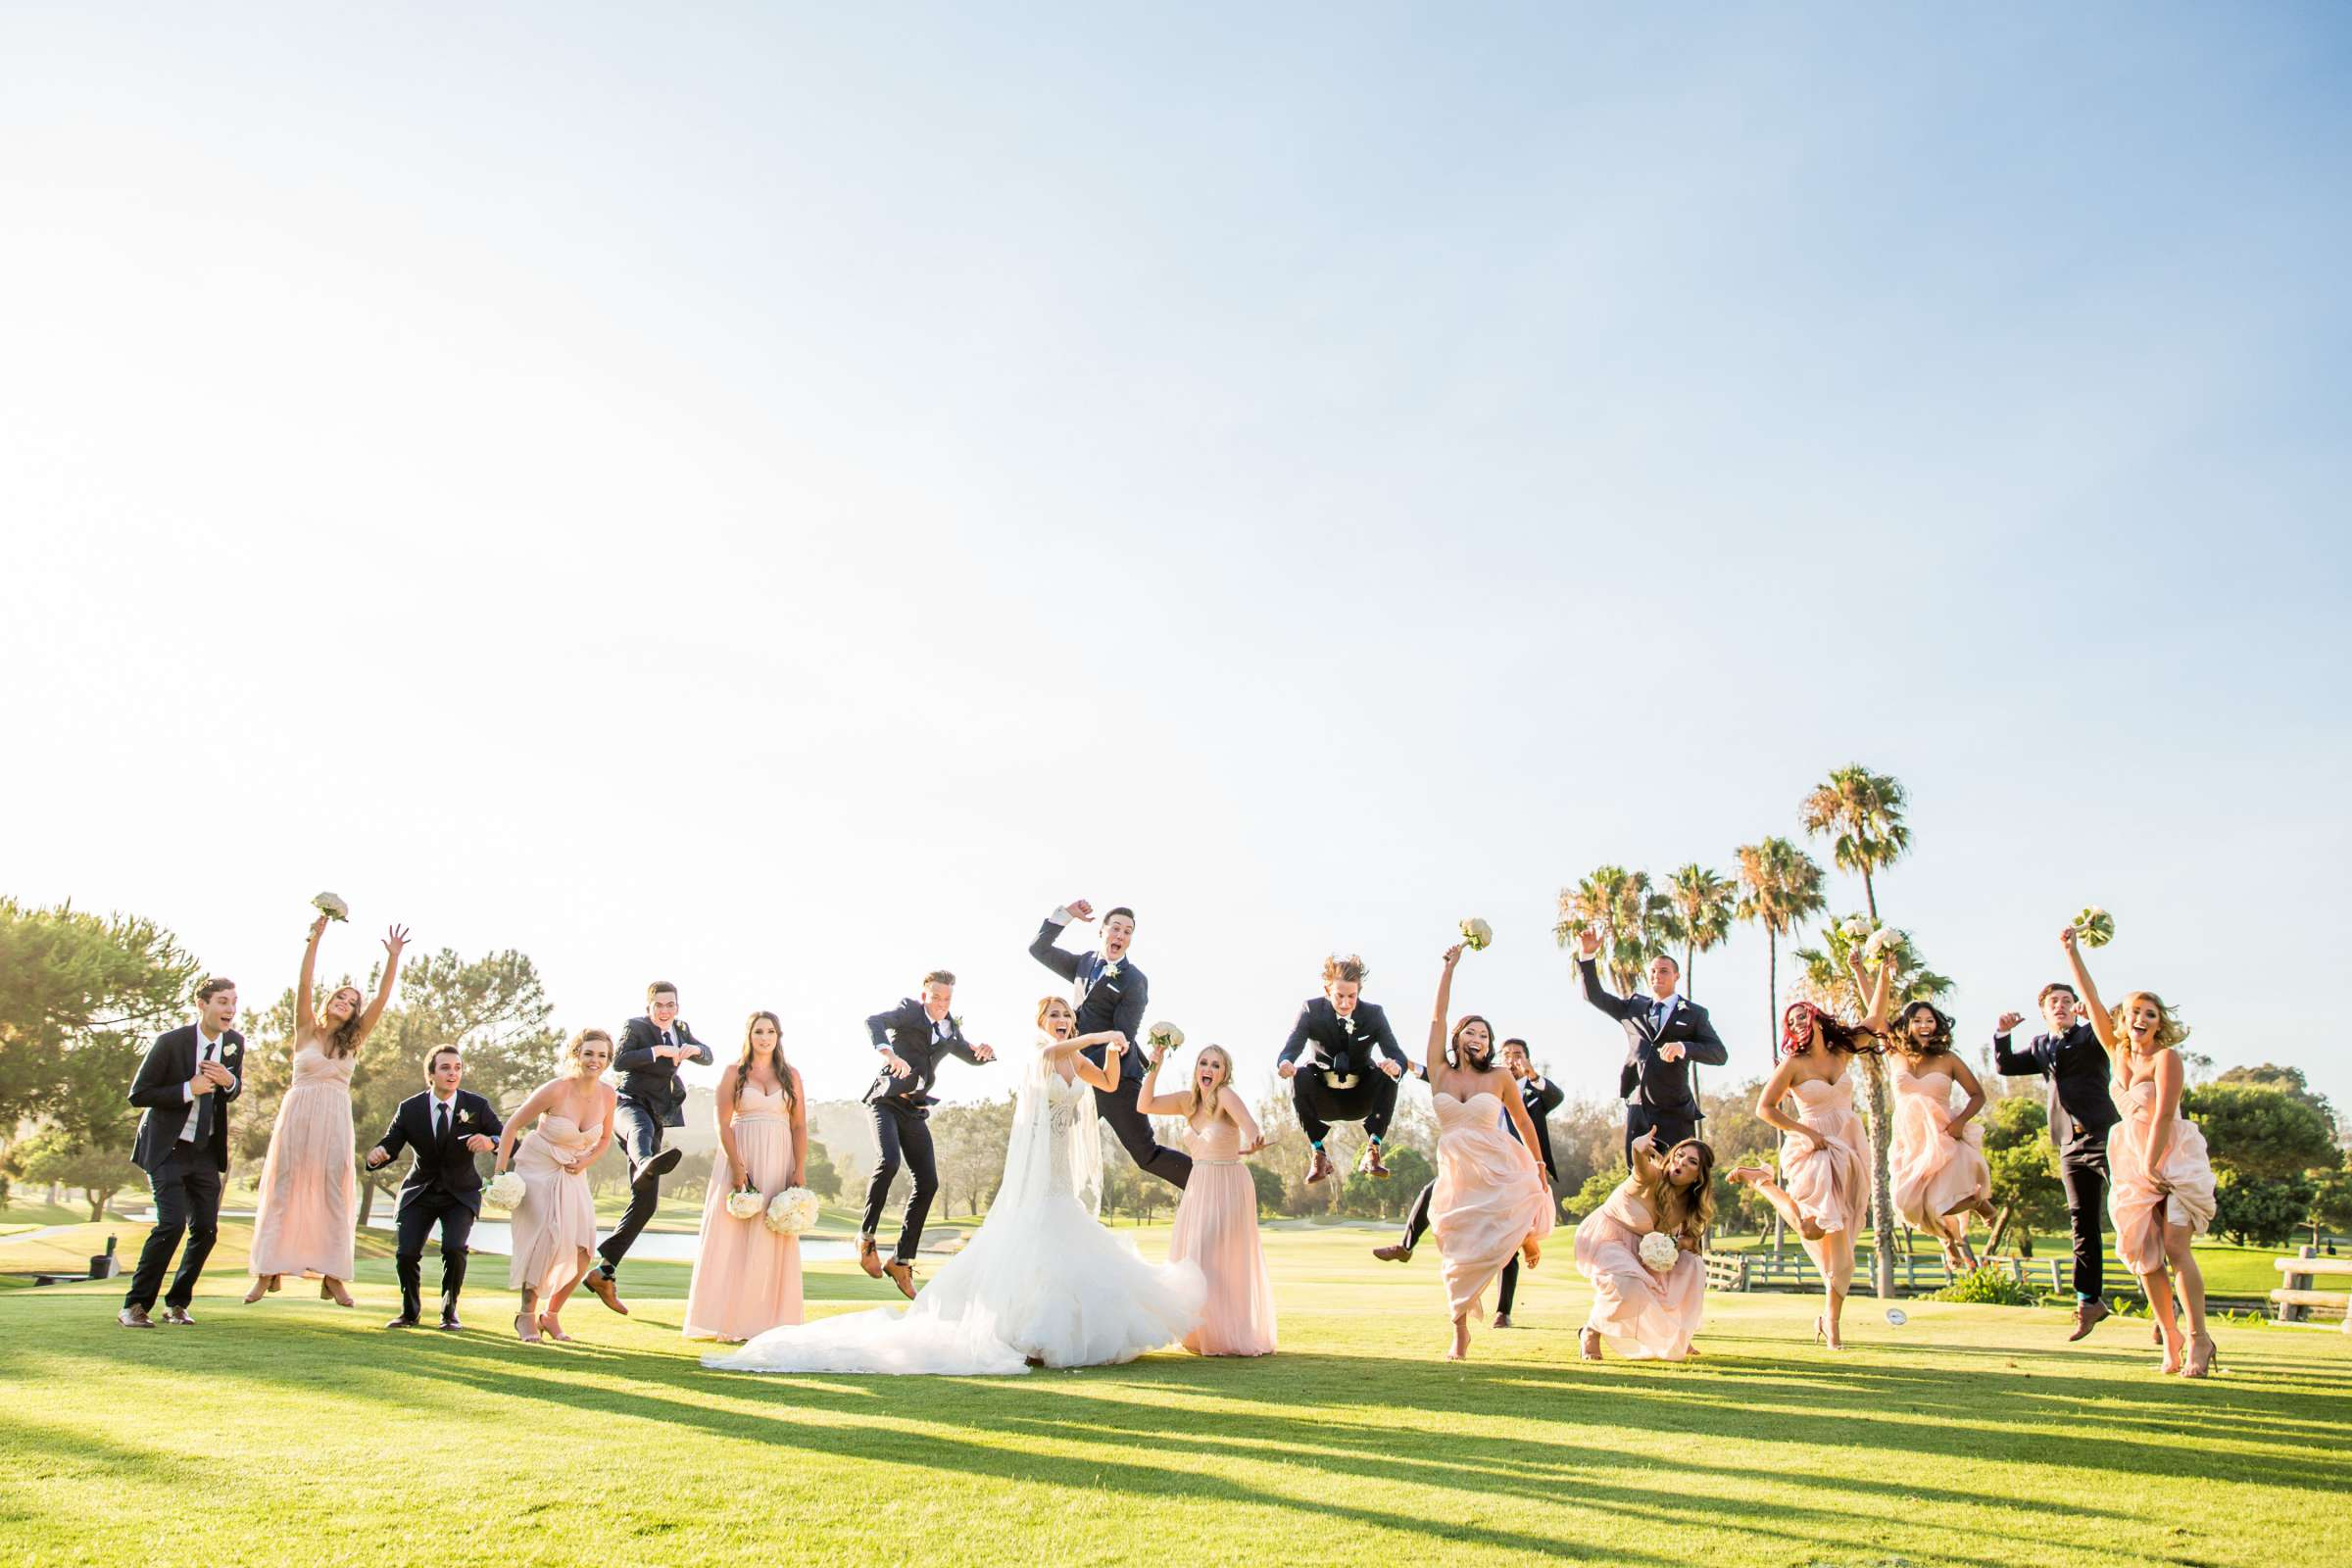 Fairbanks Ranch Country Club Wedding coordinated by Monarch Weddings, Gabriella and Kyle Wedding Photo #105 by True Photography